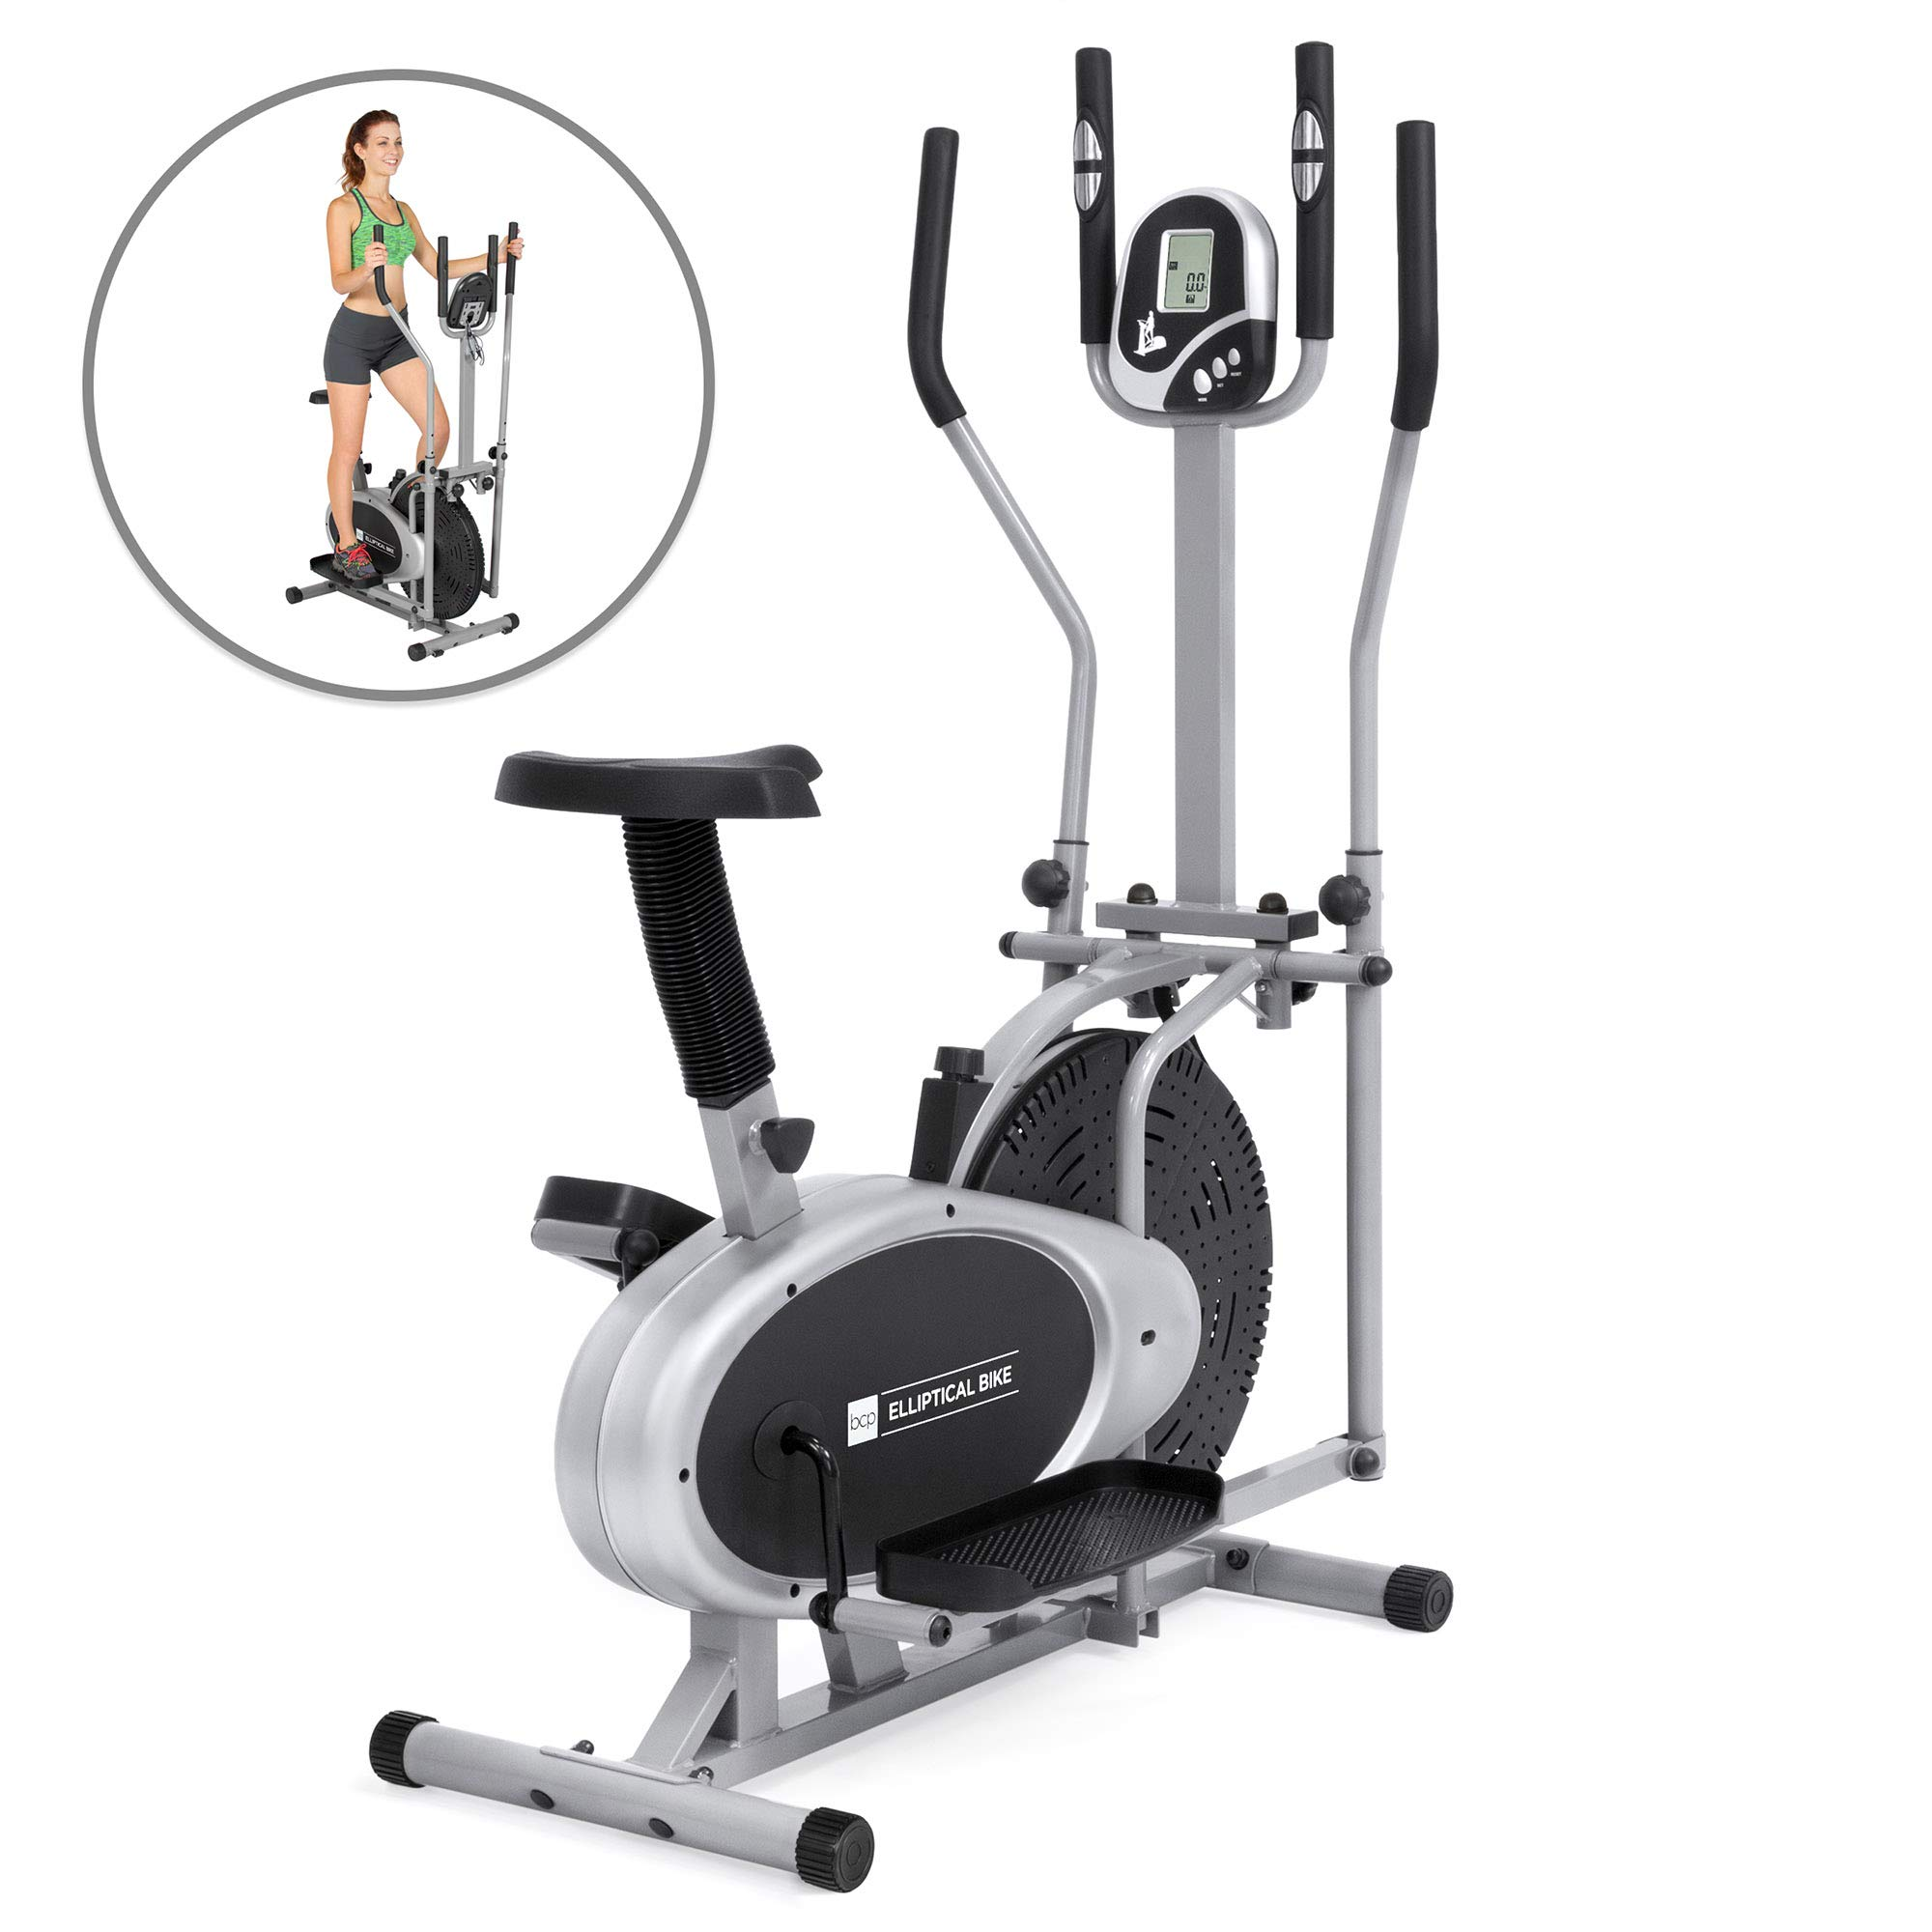 Elliptical Bike 2 IN 1 Cross Trainer Exercise Fitness Machine Upgraded Model by Best Choice Products (Image #1)